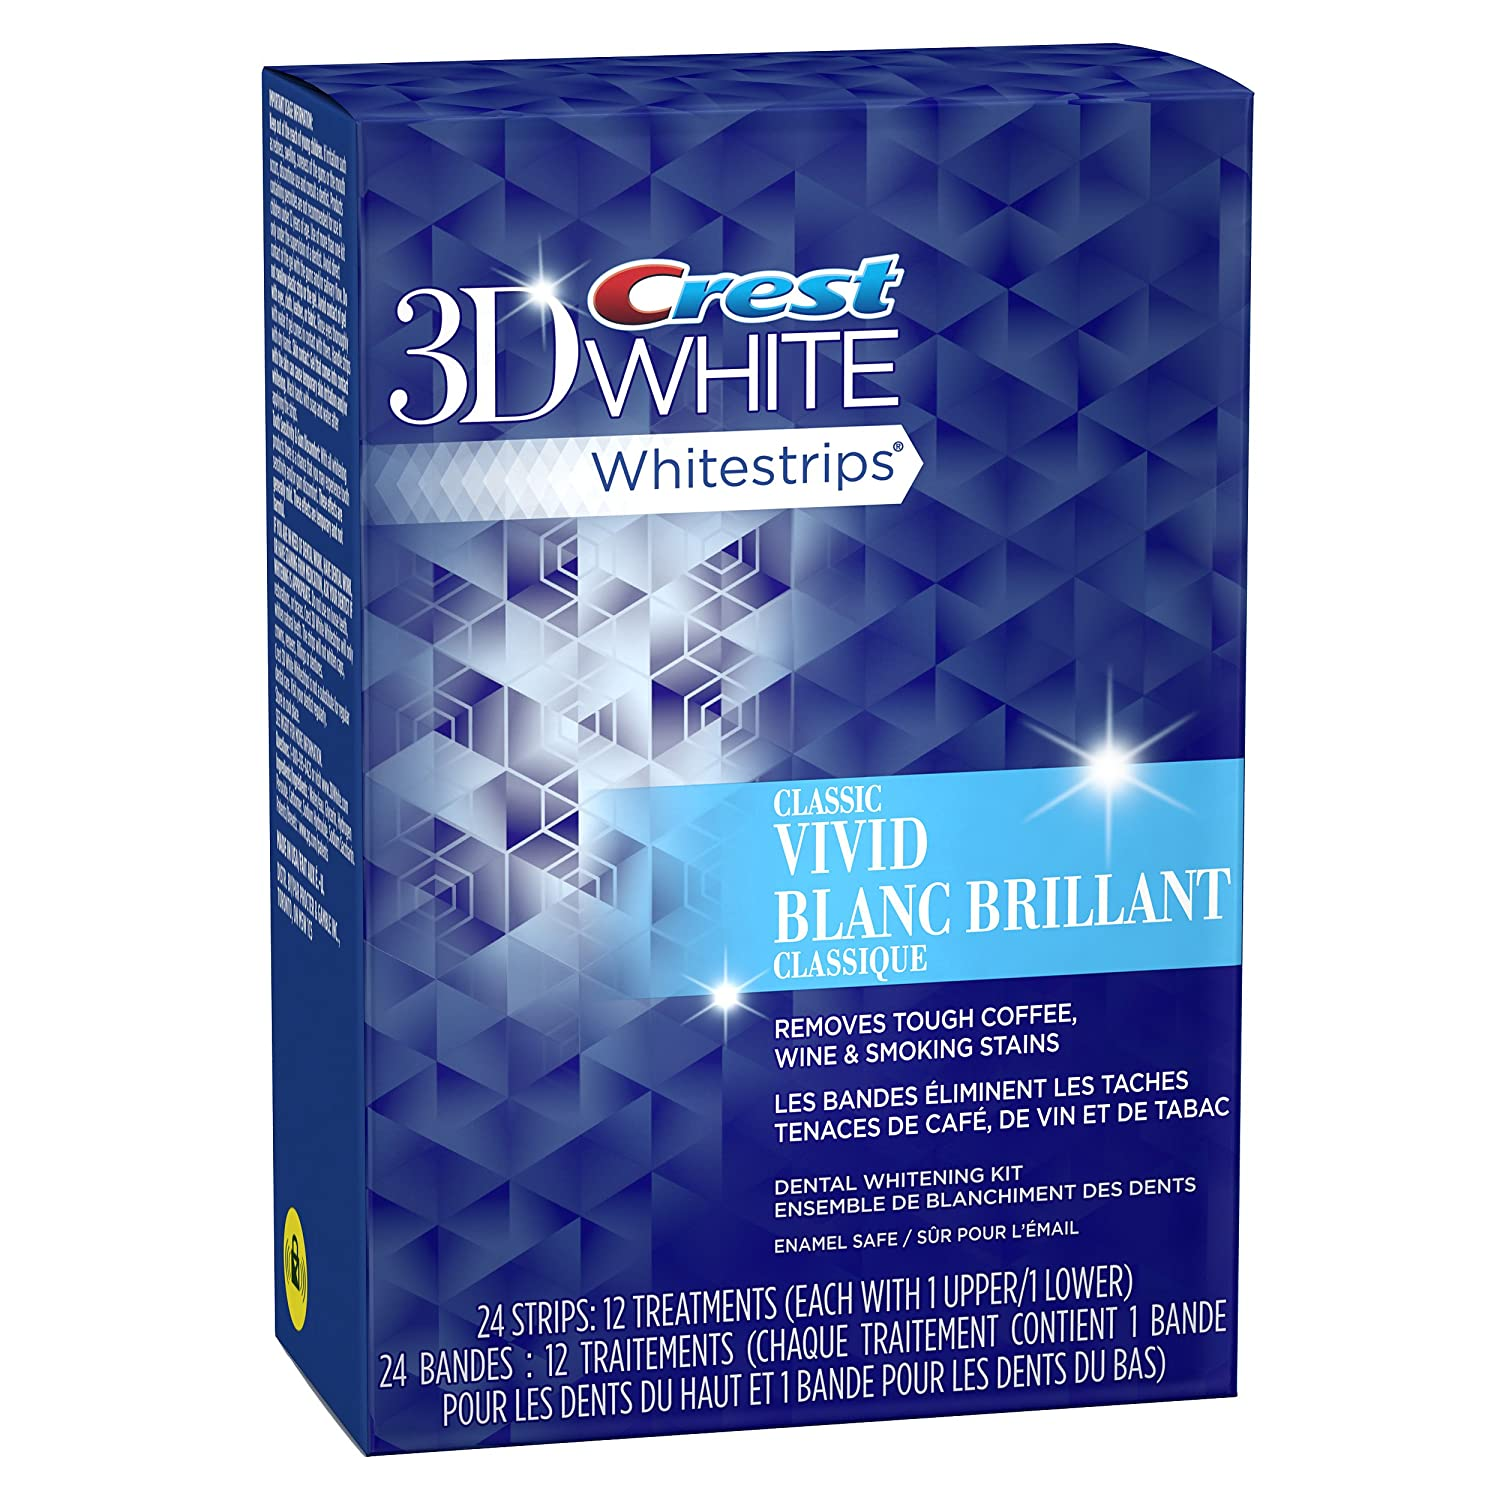 Crest 3D White Whitestrips Vivid Dental Whitening Kit, 12 Pouches